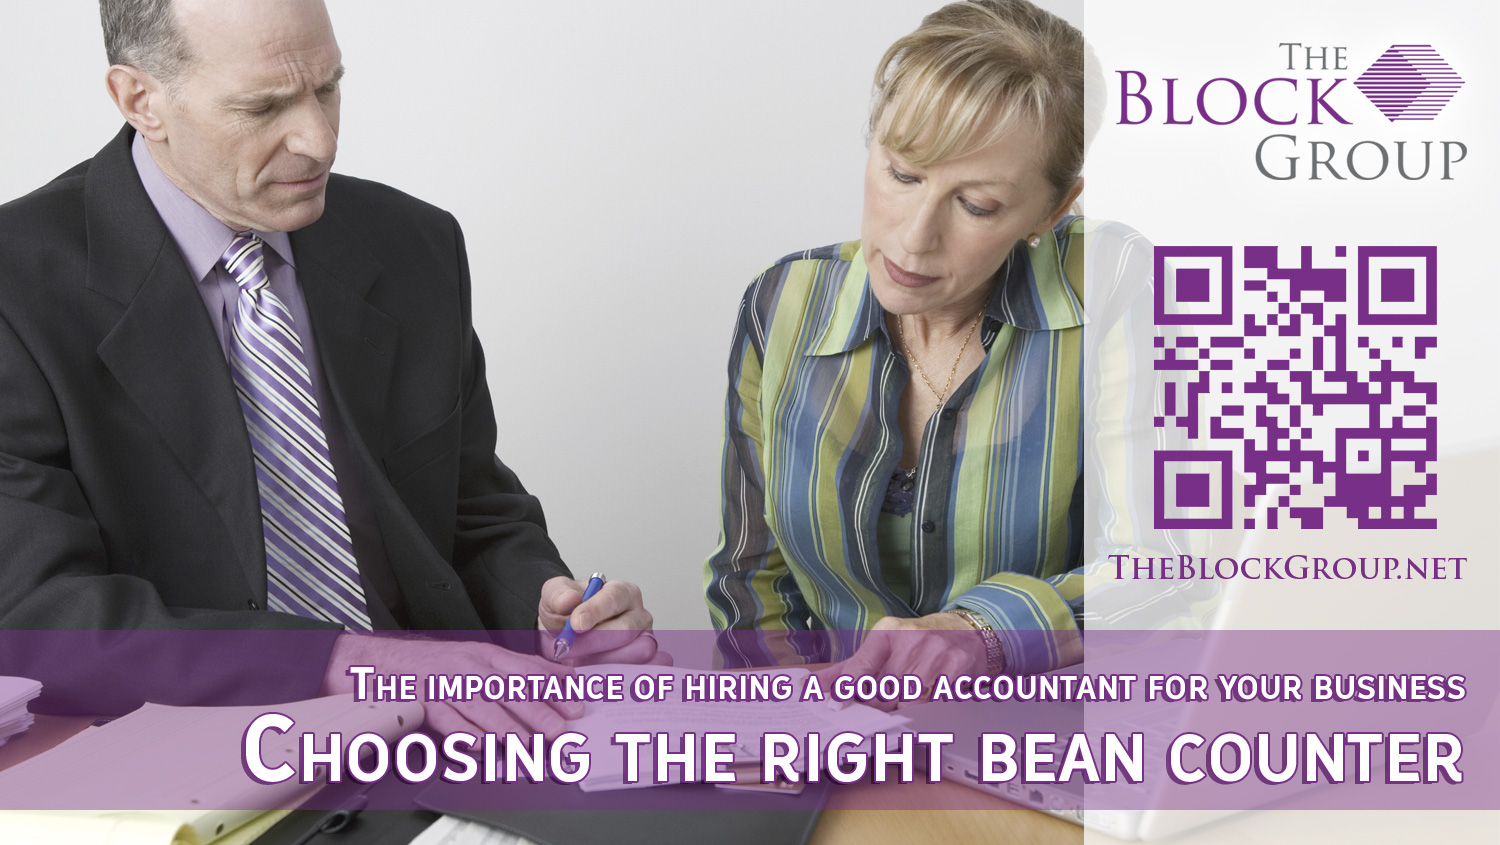 012-Choosing-the-right-bean-counter